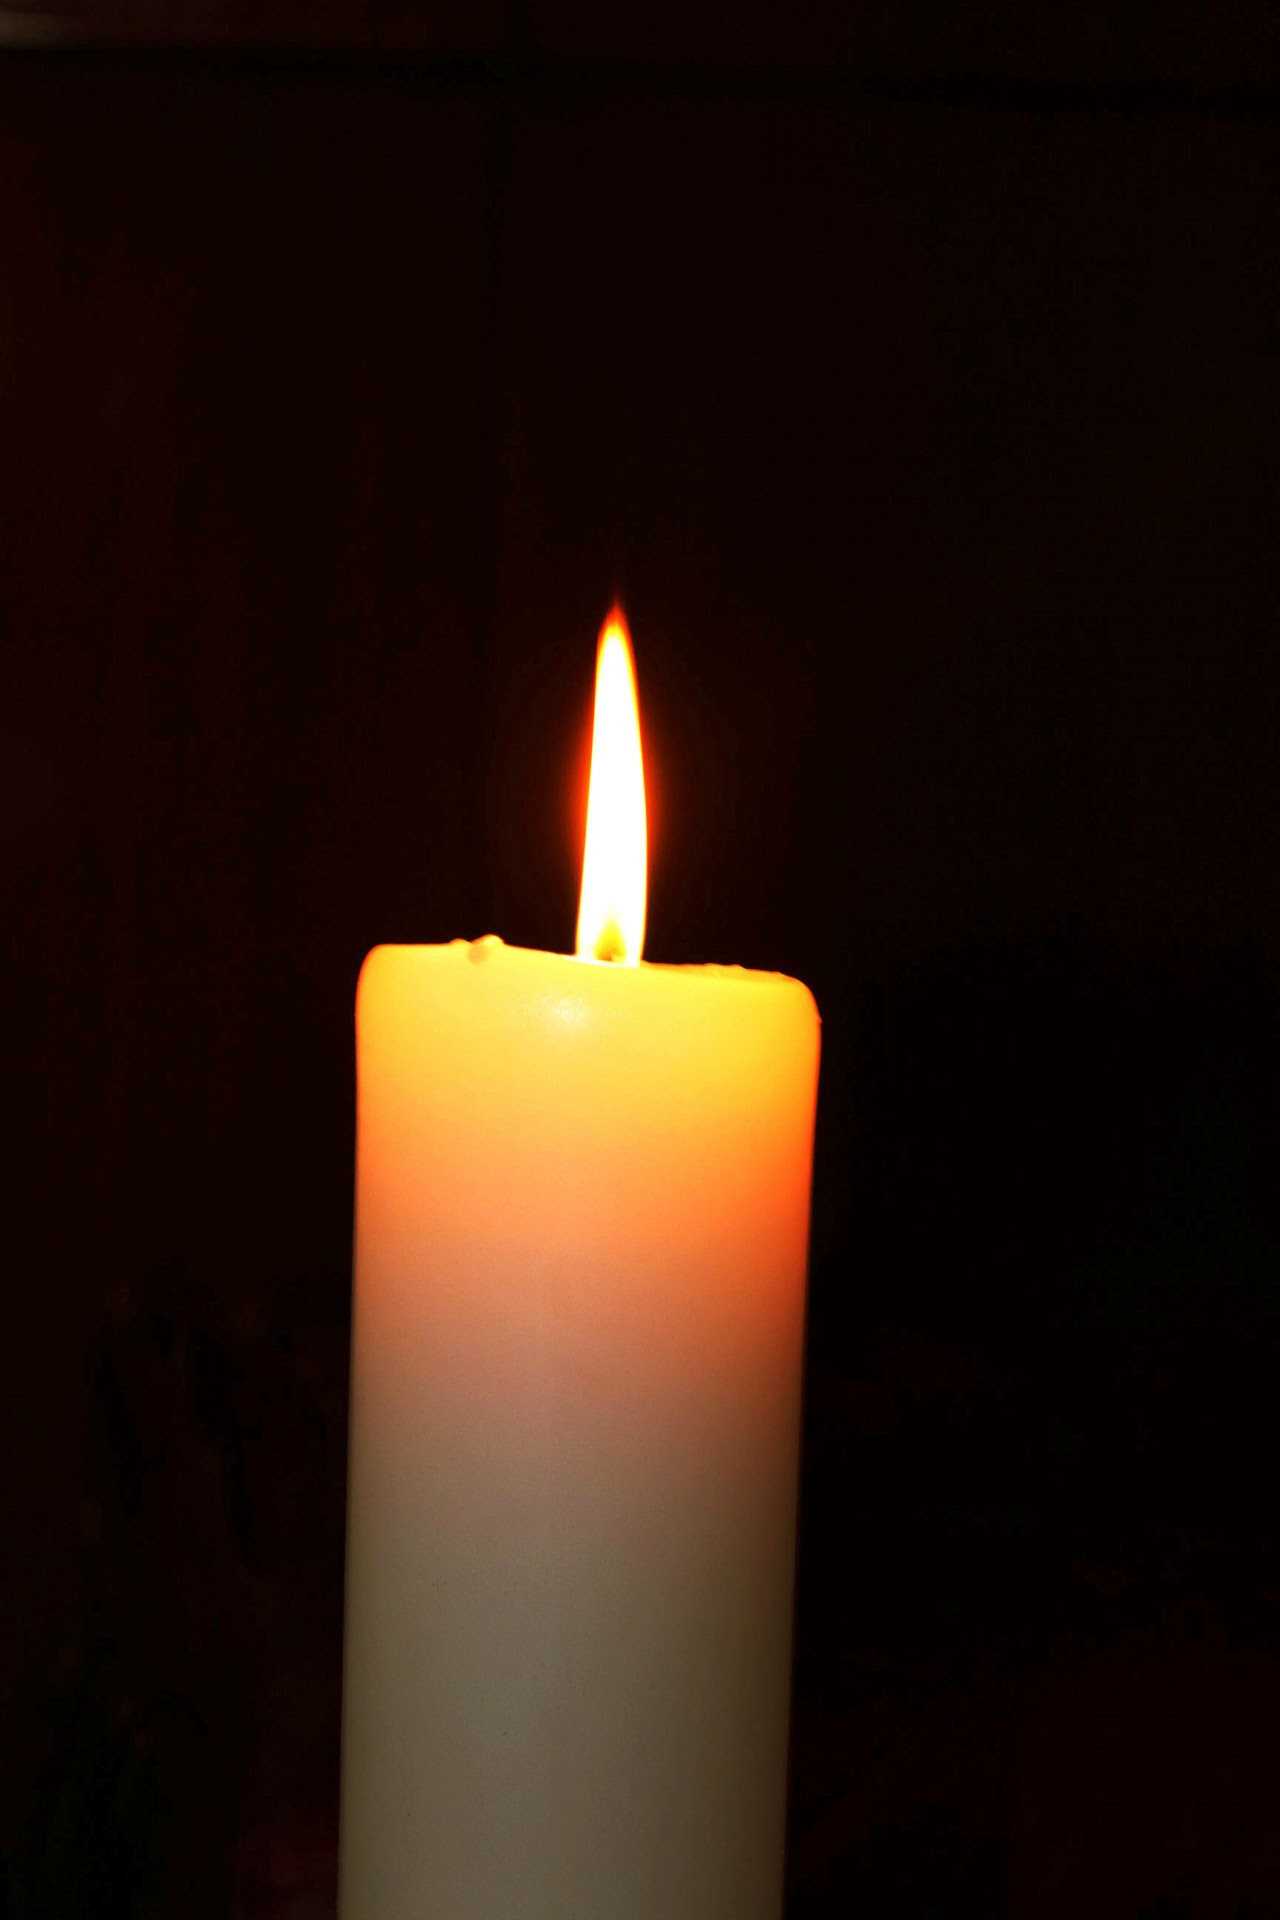 Yellow Candle Free Stock Photo - Public Domain Pictures